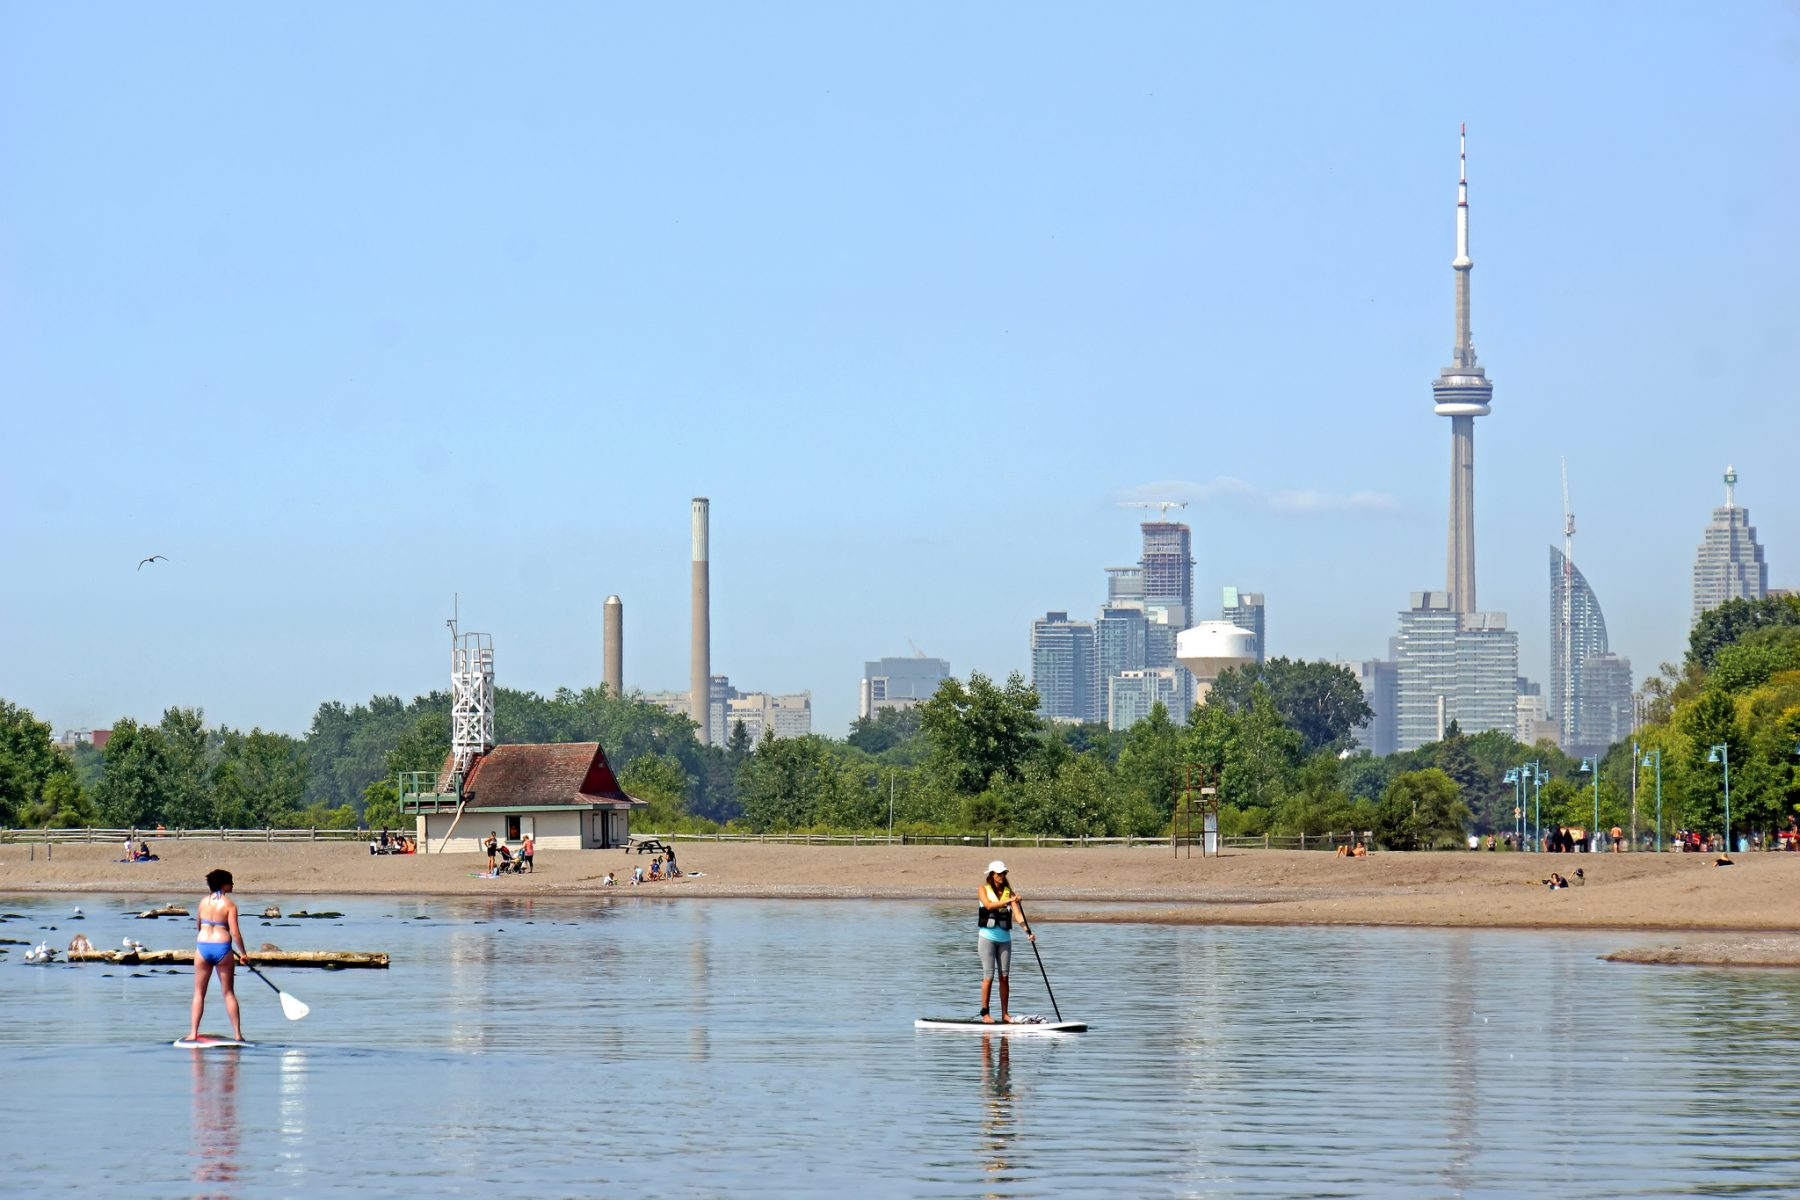 It's going to be scorching hot in Toronto this weekend